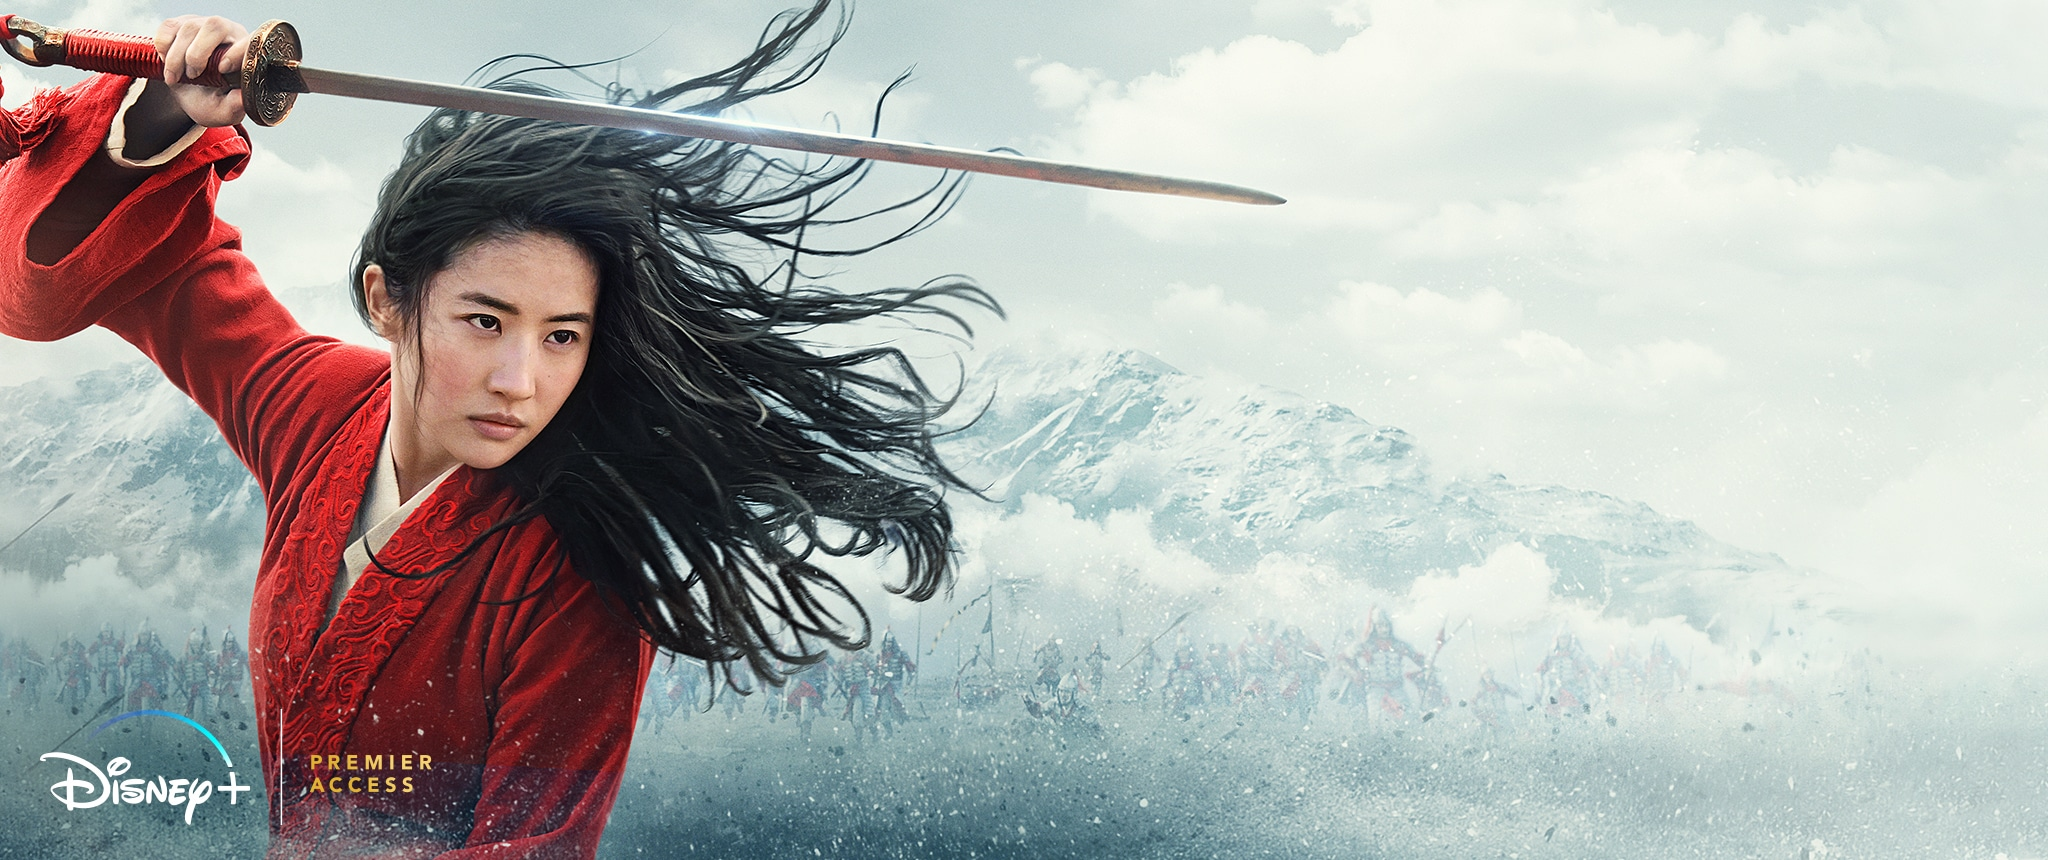 Hero - Disney+ - Mulan (2020) movie landing page **NOW STREAMING**